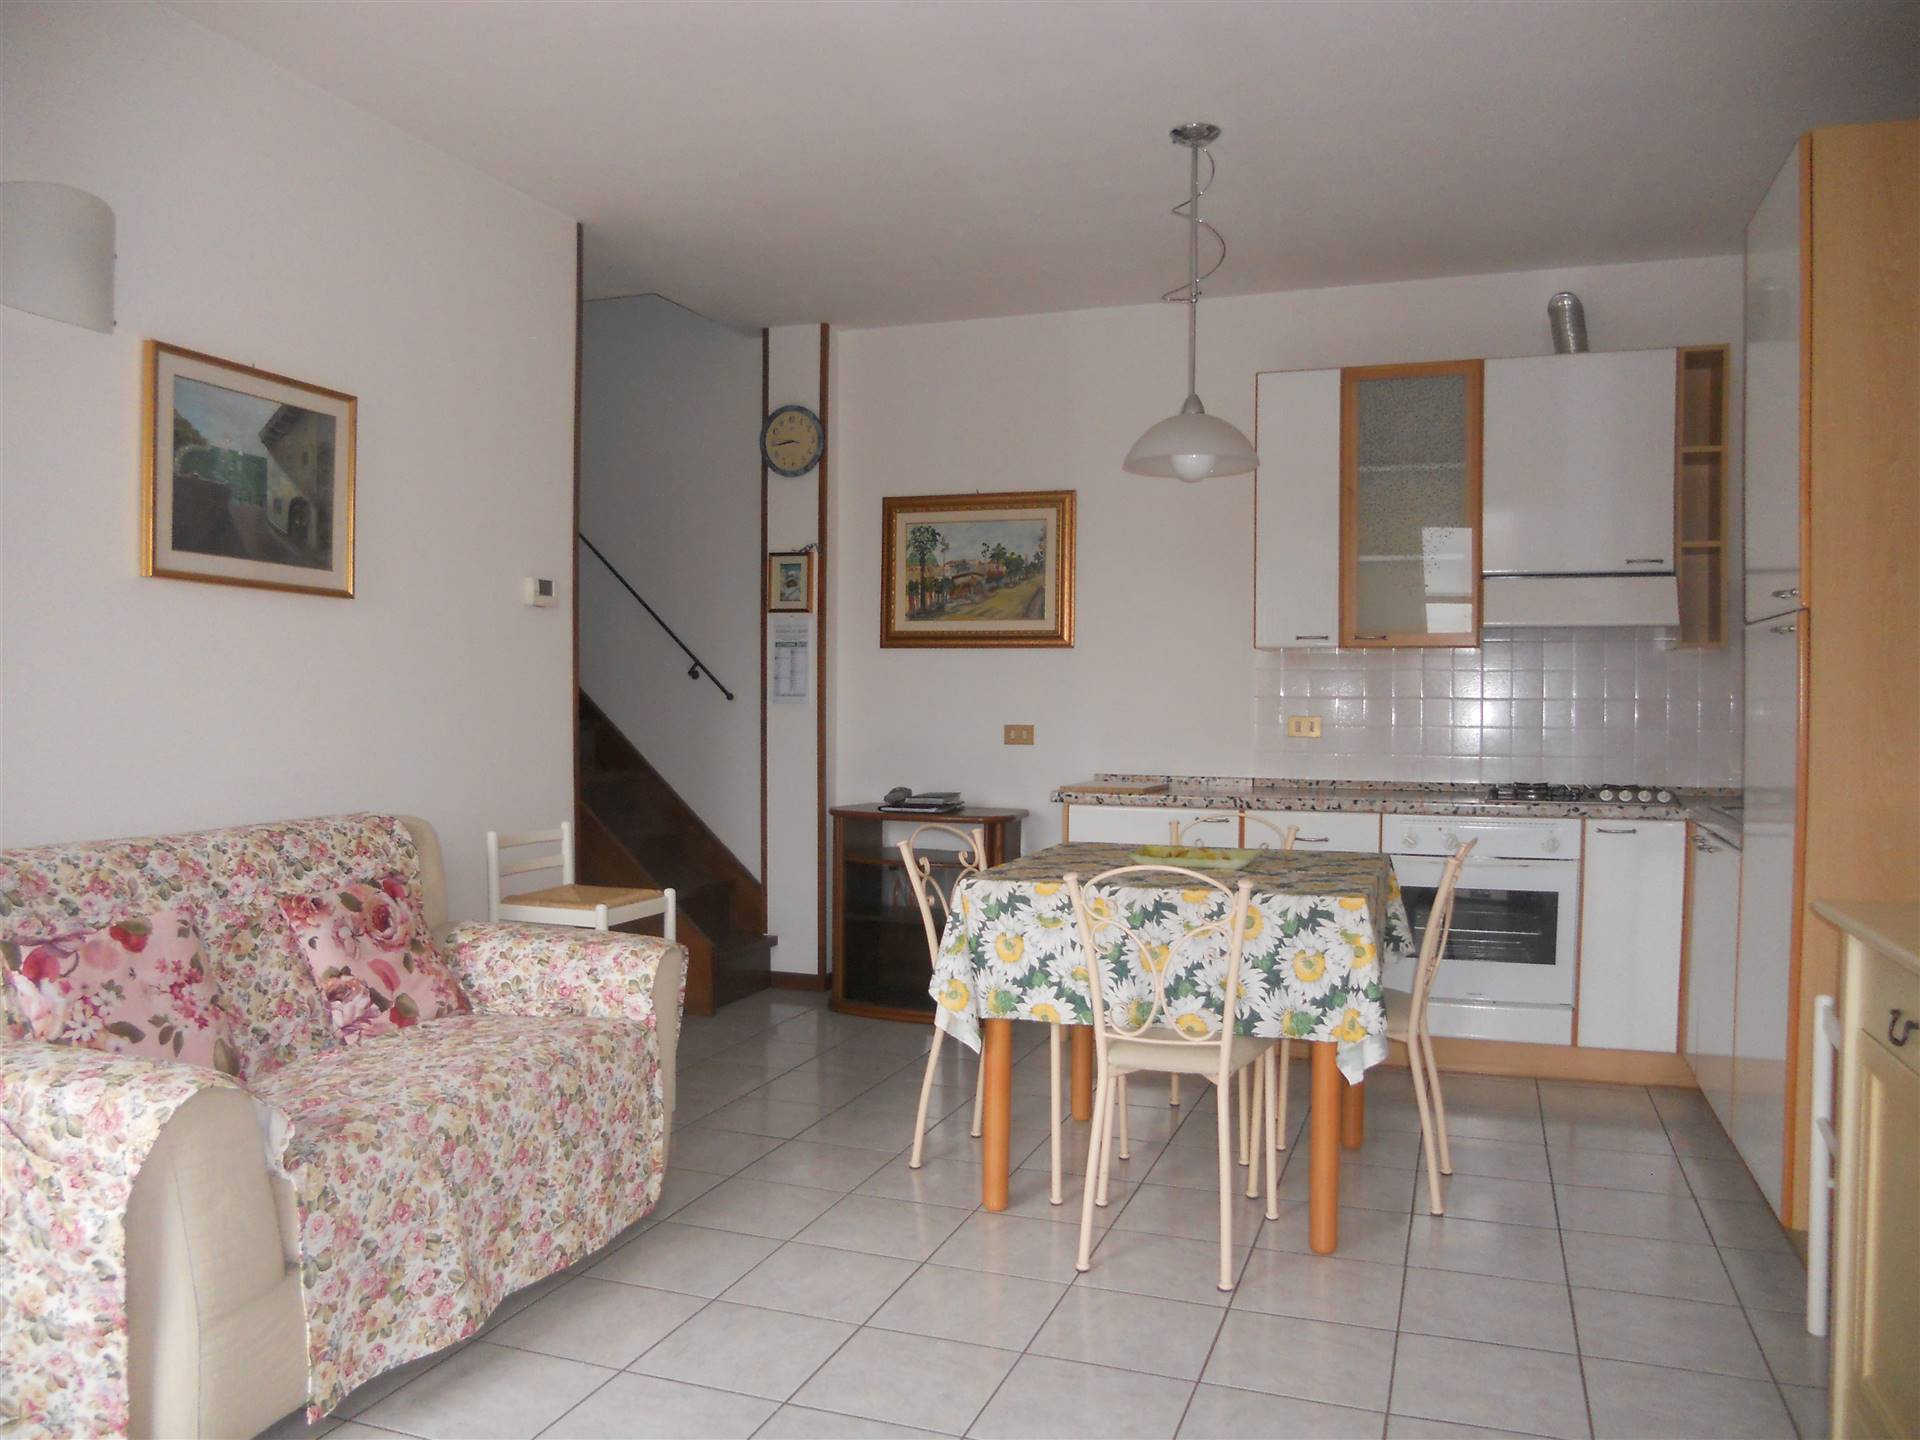 SAN PIERO A PONTI, CAMPI BISENZIO, Apartment for sale of 70 Sq. mt., Excellent Condition, Heating Individual heating system, Energetic class: G,